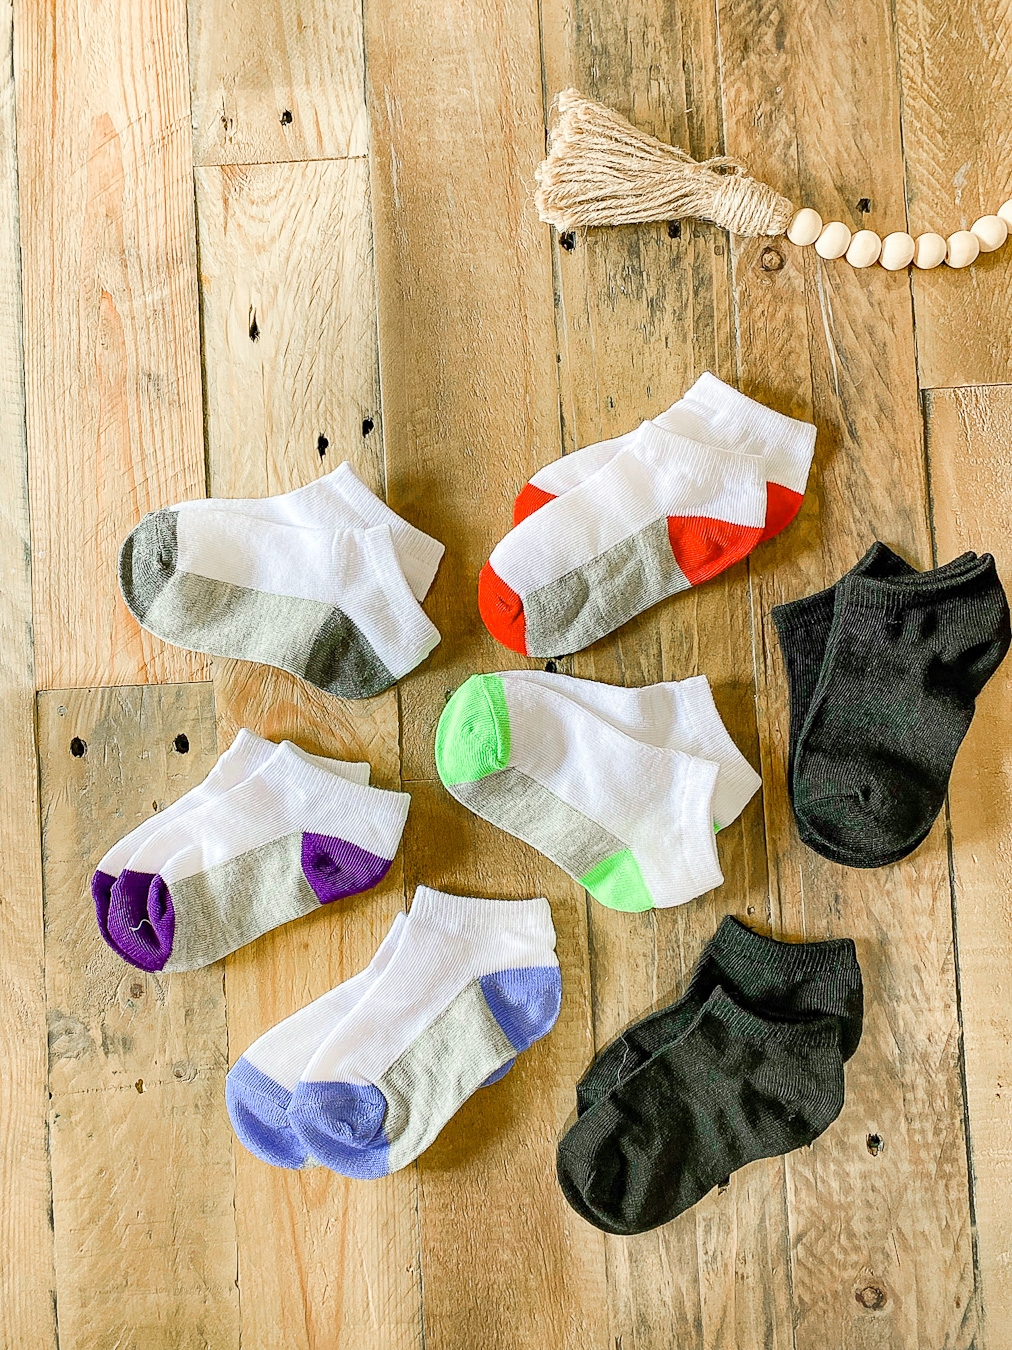 Socks for toddlers